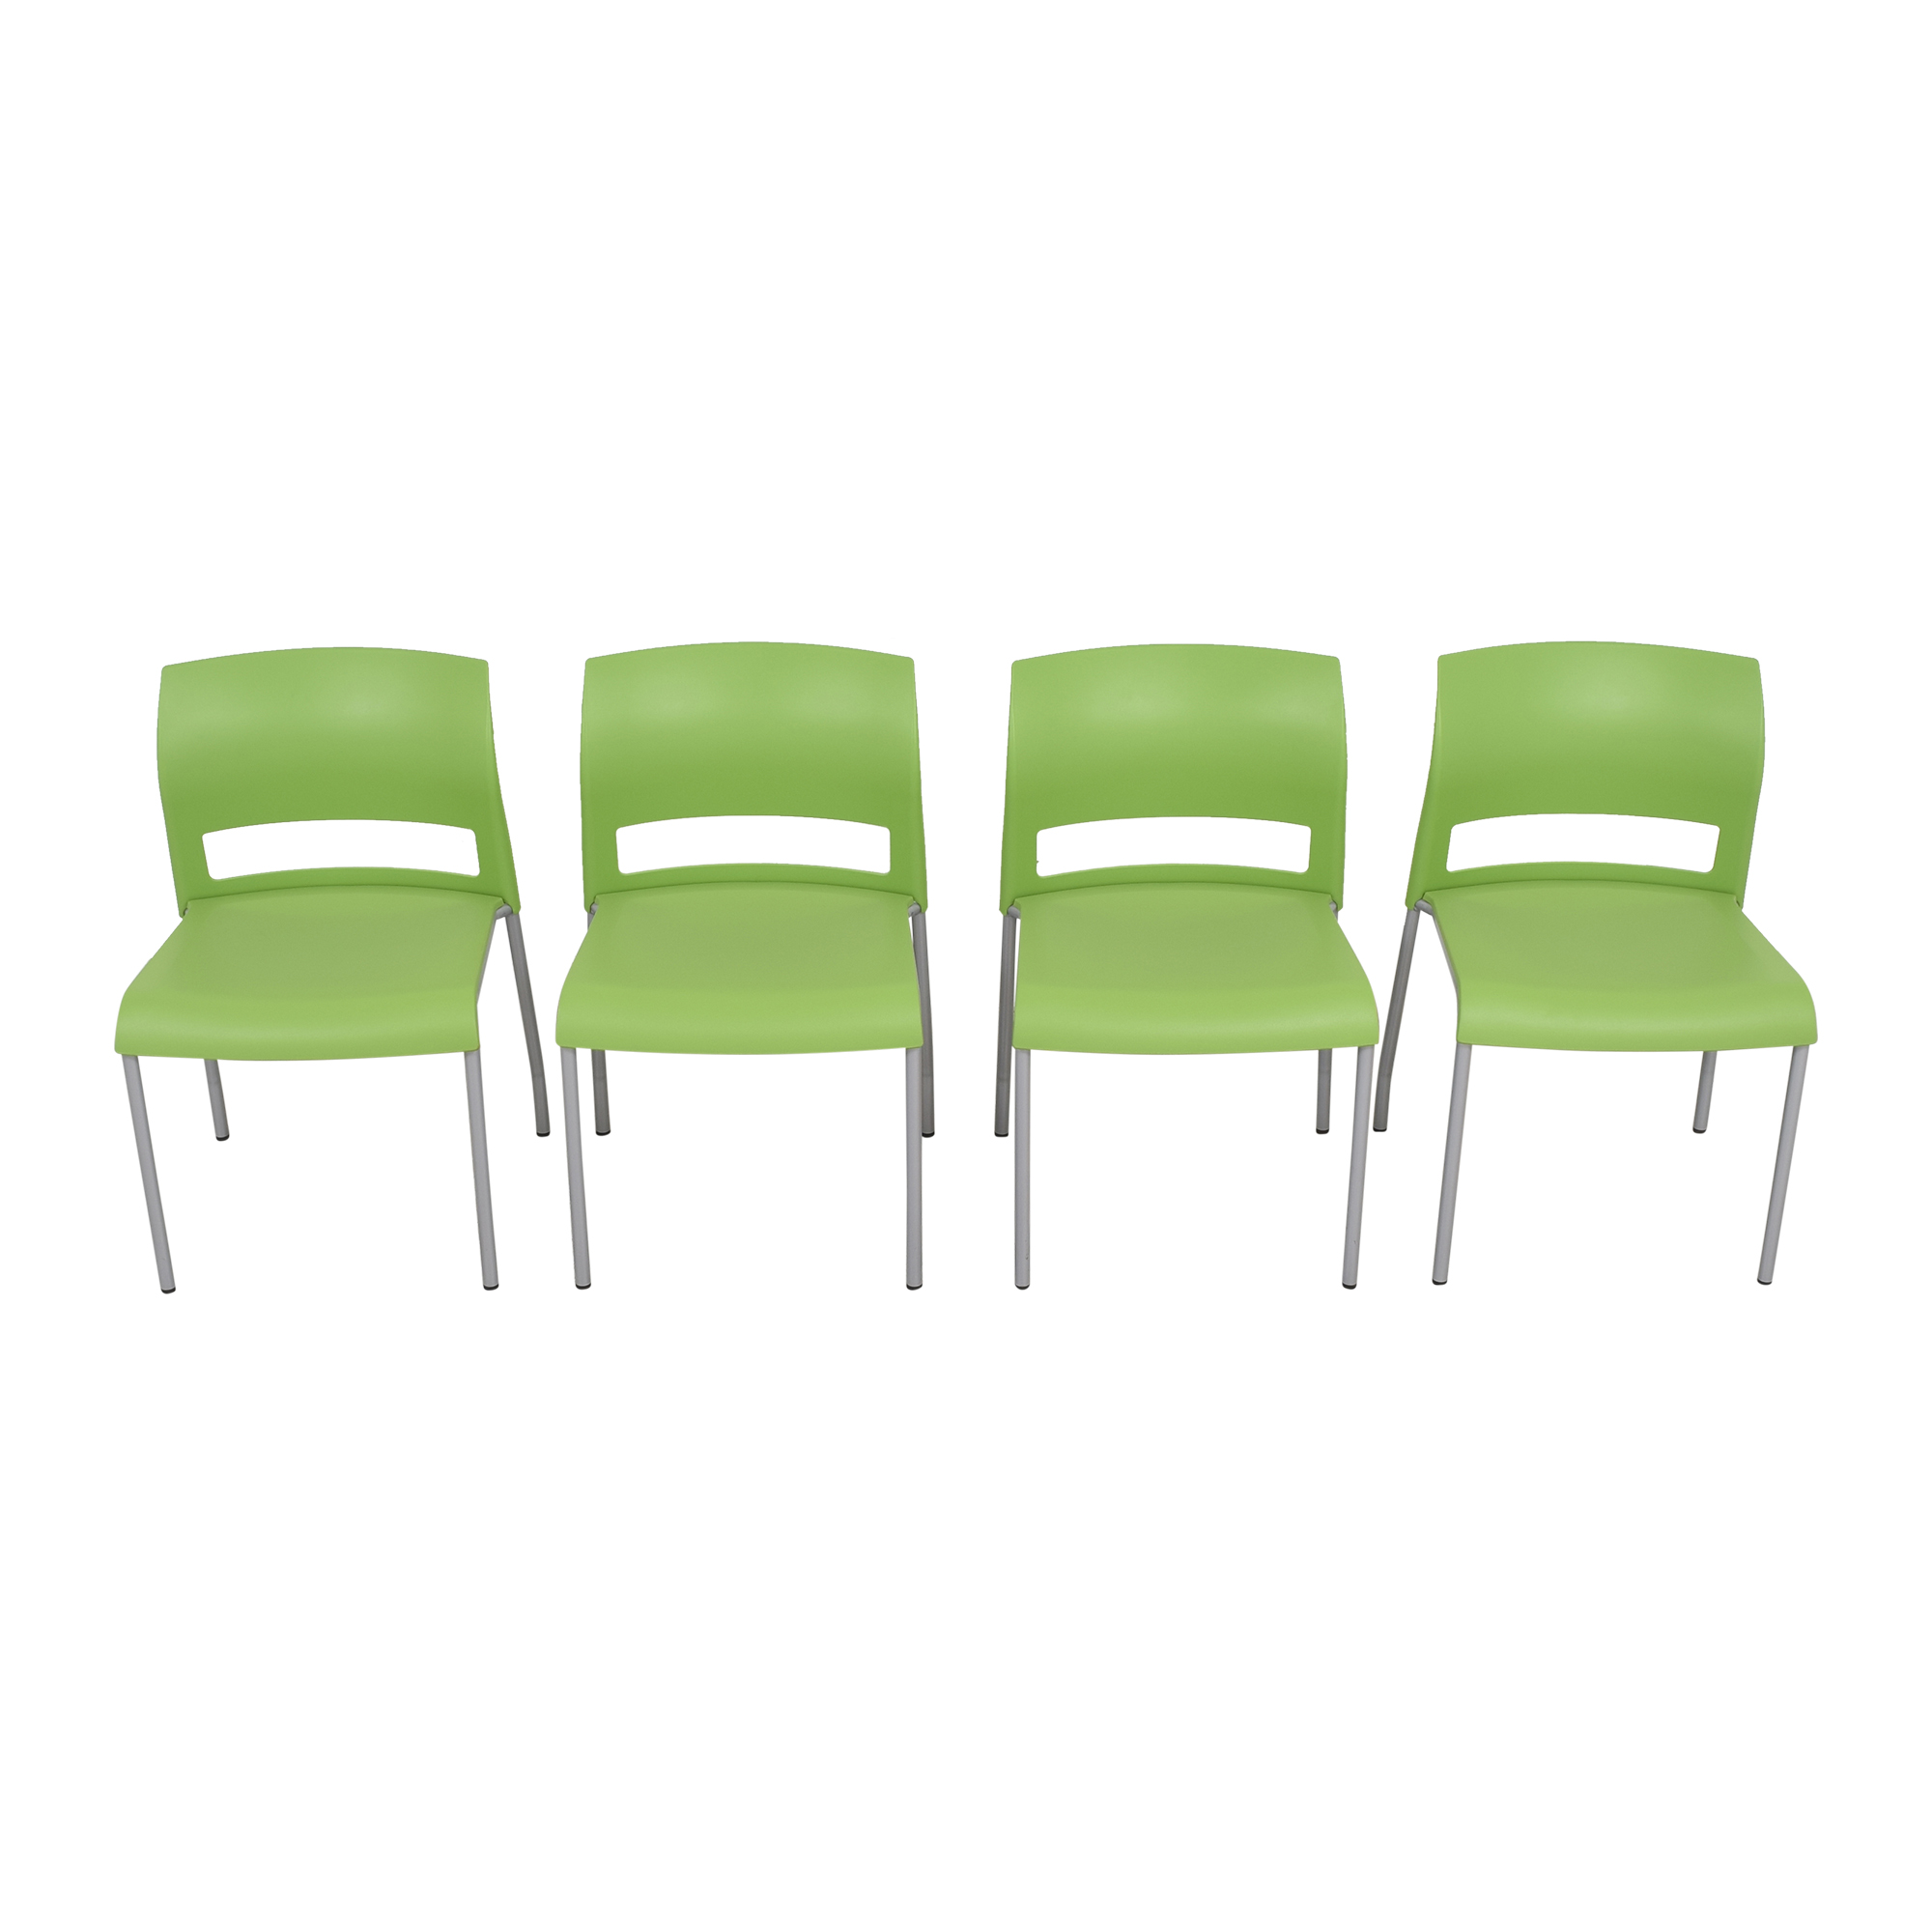 Steelcase Steelcase Move Stackable Chairs second hand